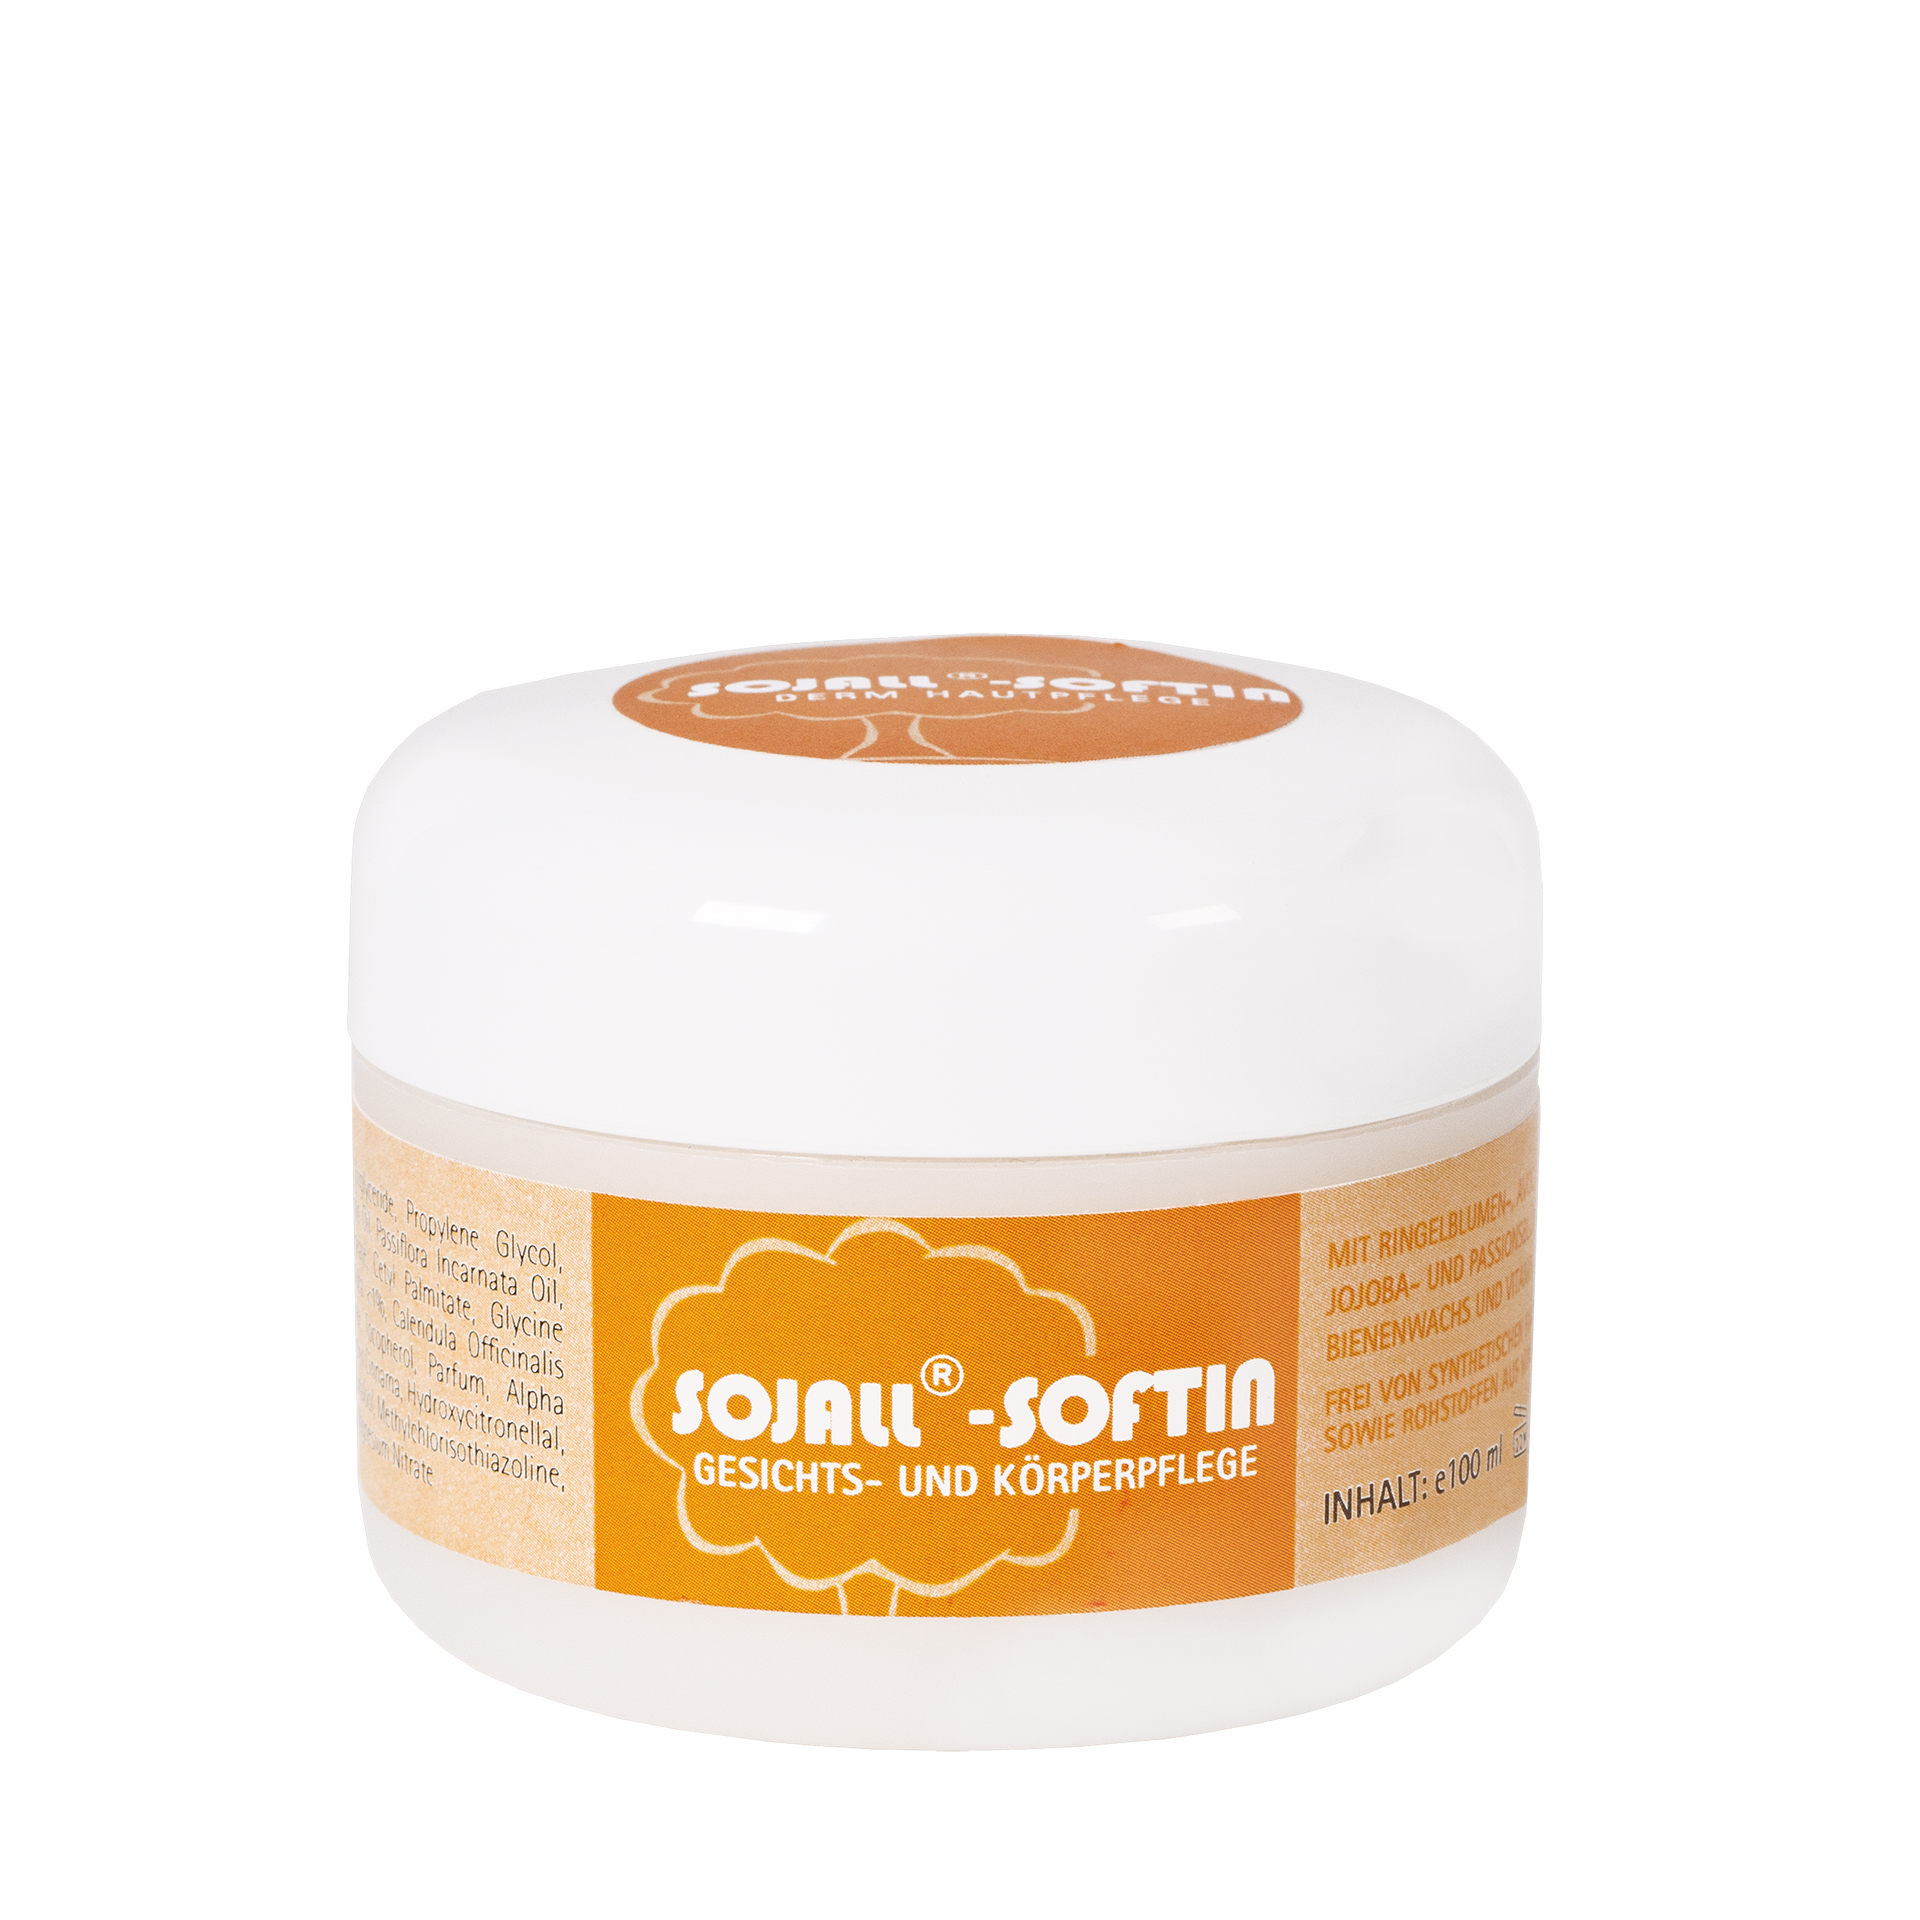 Sojall-Softin, 100 ml